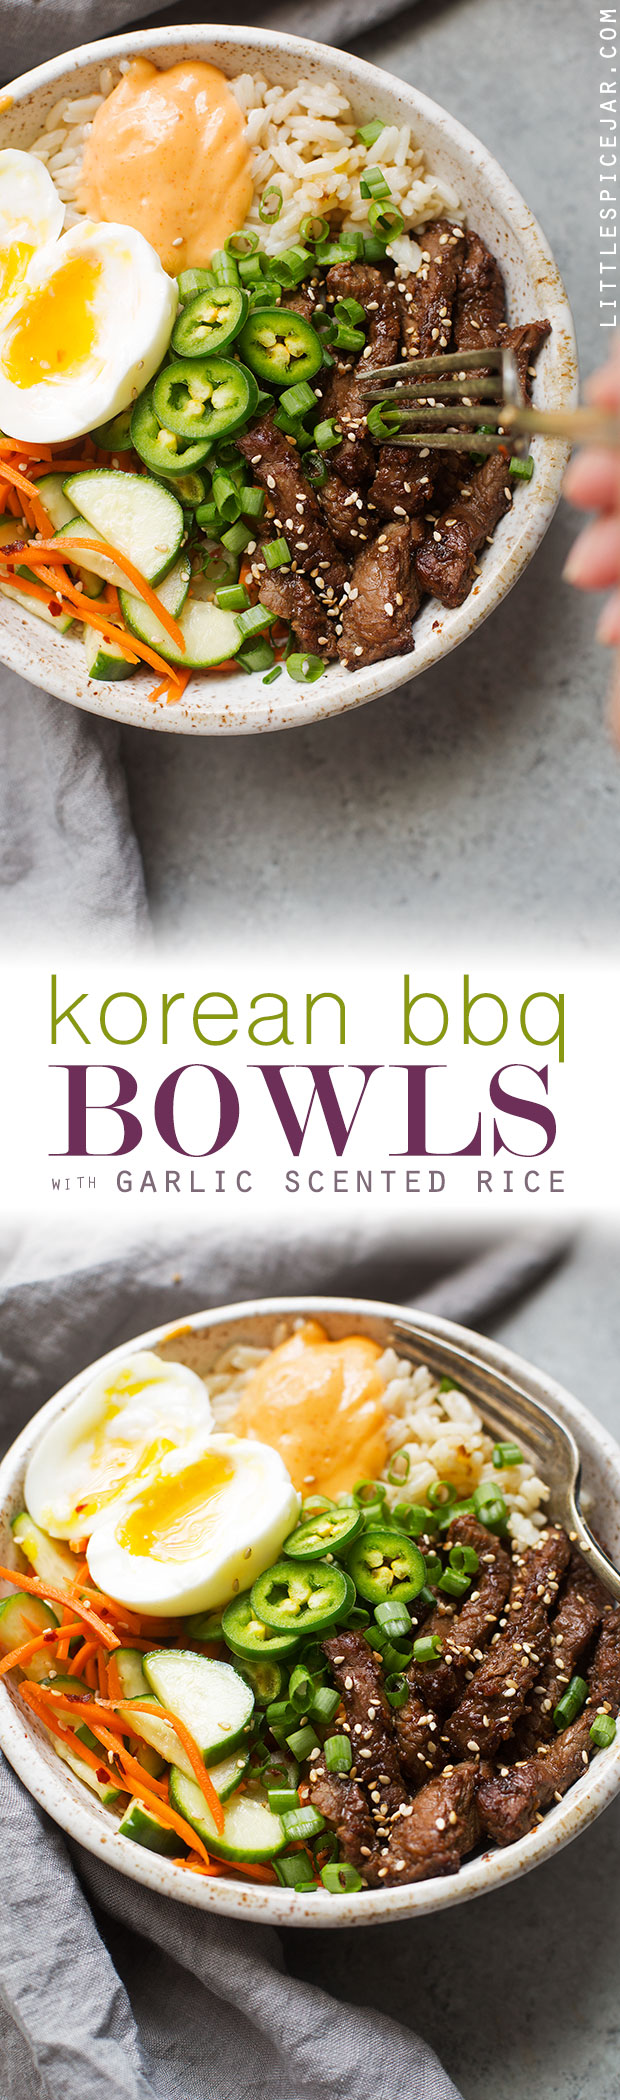 Korean BBQ Bowls with Garlic Scented Rice - Warm, comforting bowls with marinated steak, garlic rice, and a pickled cucumber salad. It's seriously amazing! #koreanbbqbowls #bowls #garlicrice | Littlespicejar.com